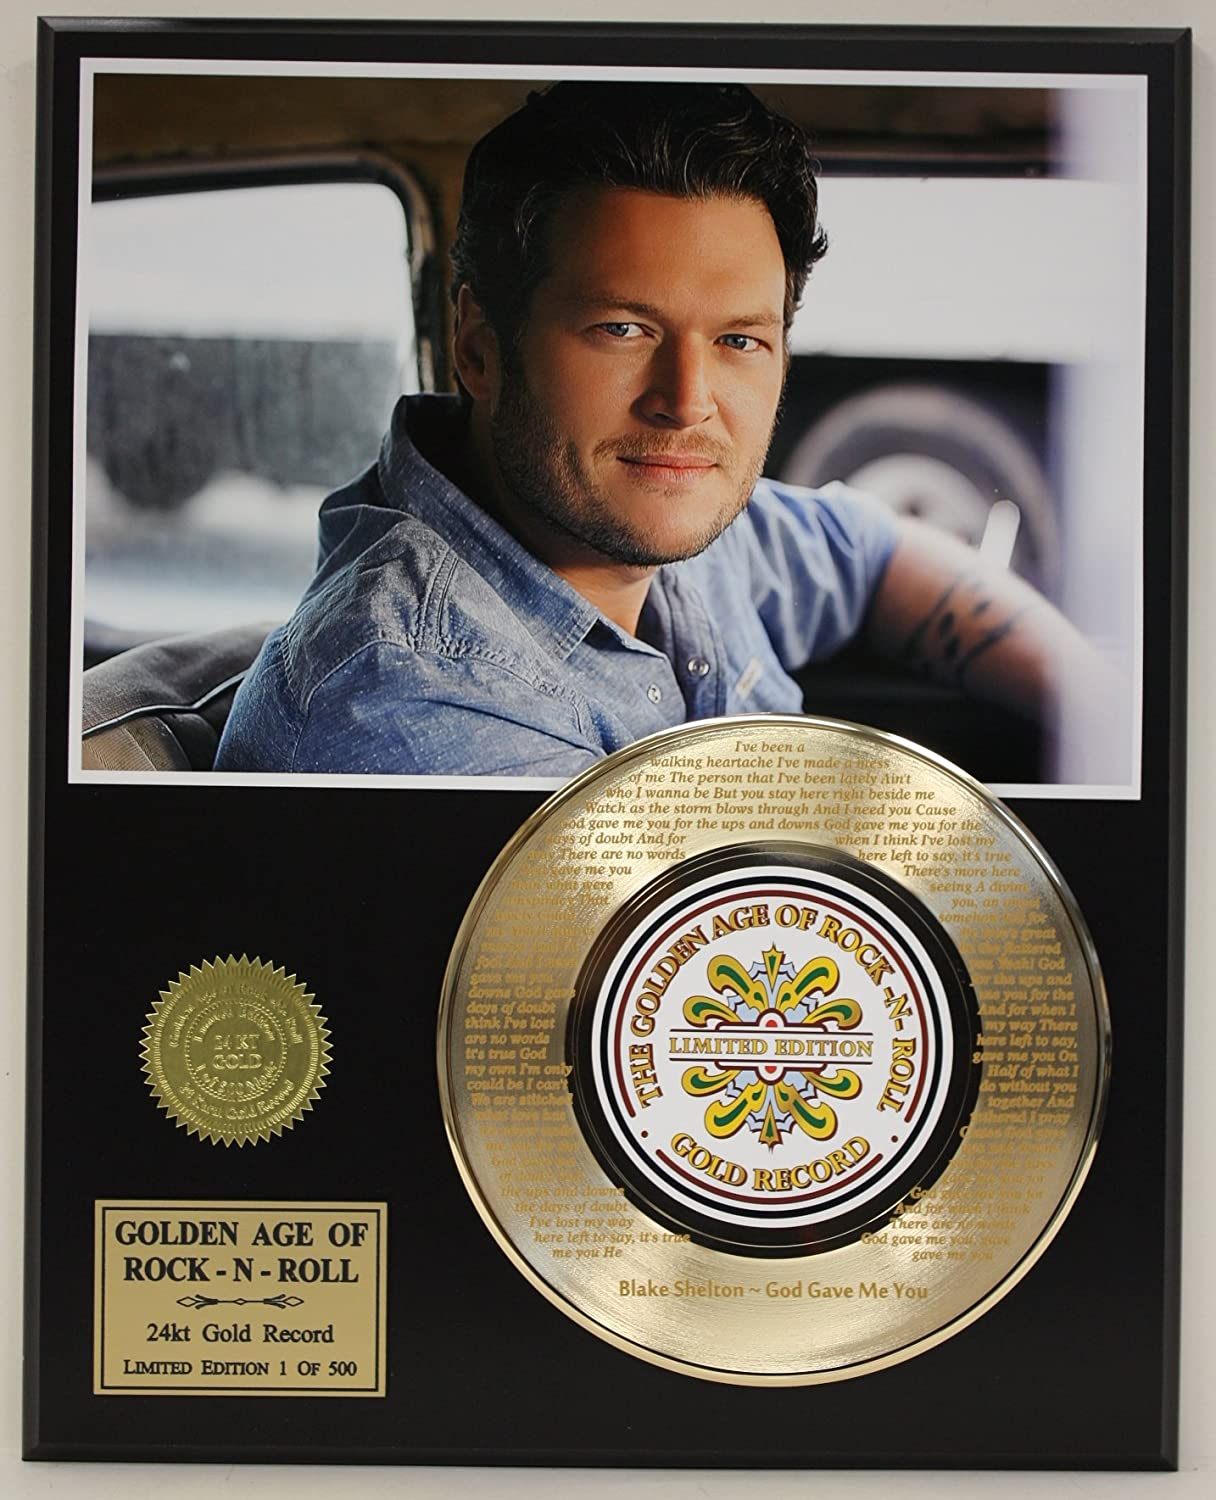 Blake Shelton Laser Etched With Lyrics To God Gave Me You Limited Edition Gold Record Display портмоне r blake business melvin advocate melvin advocate